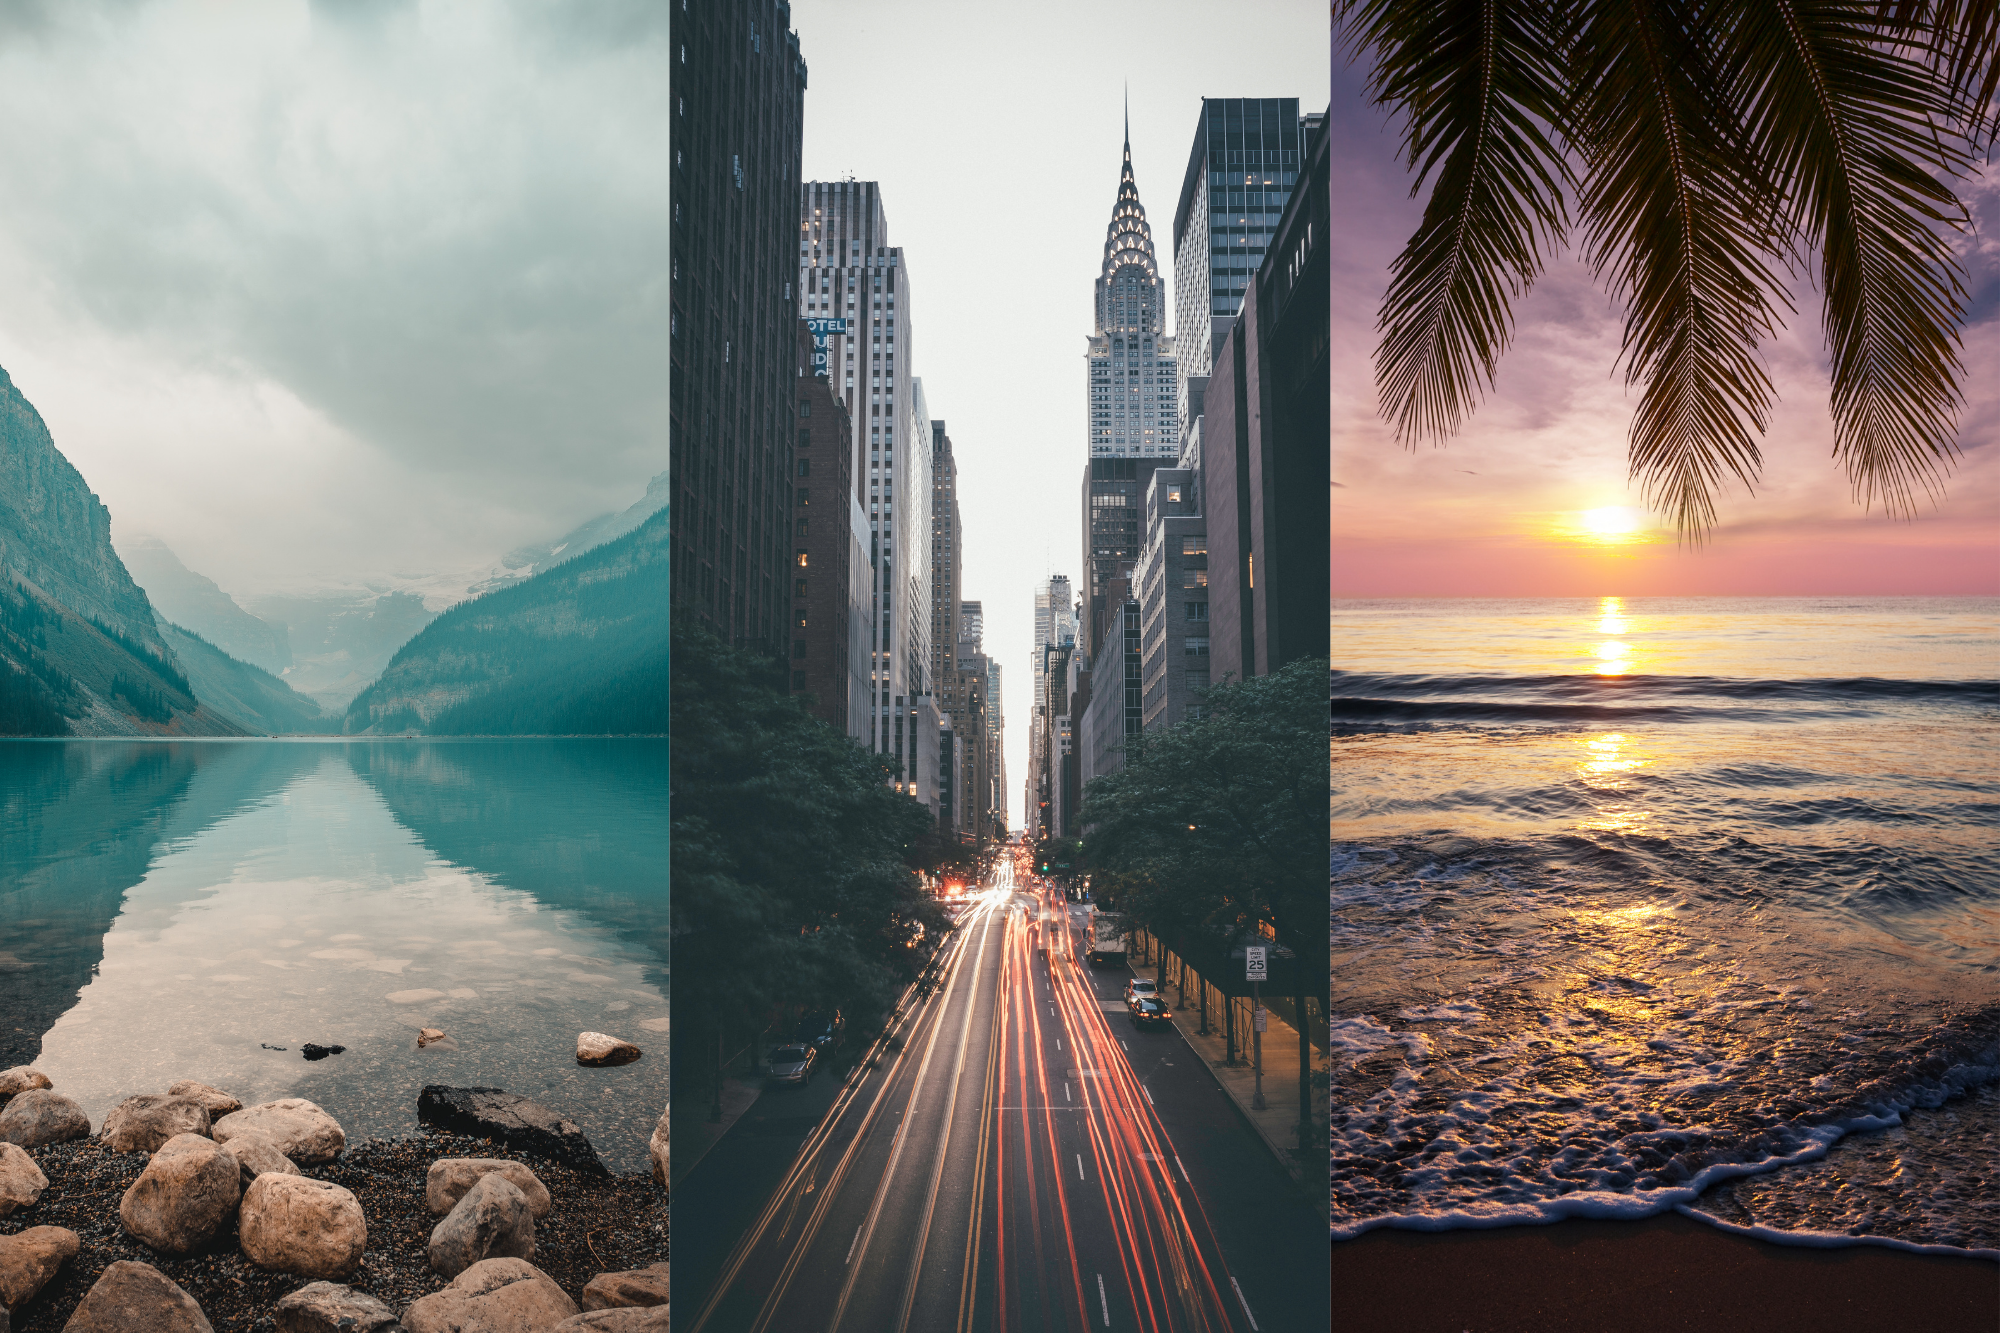 mountains, city, beach scenes